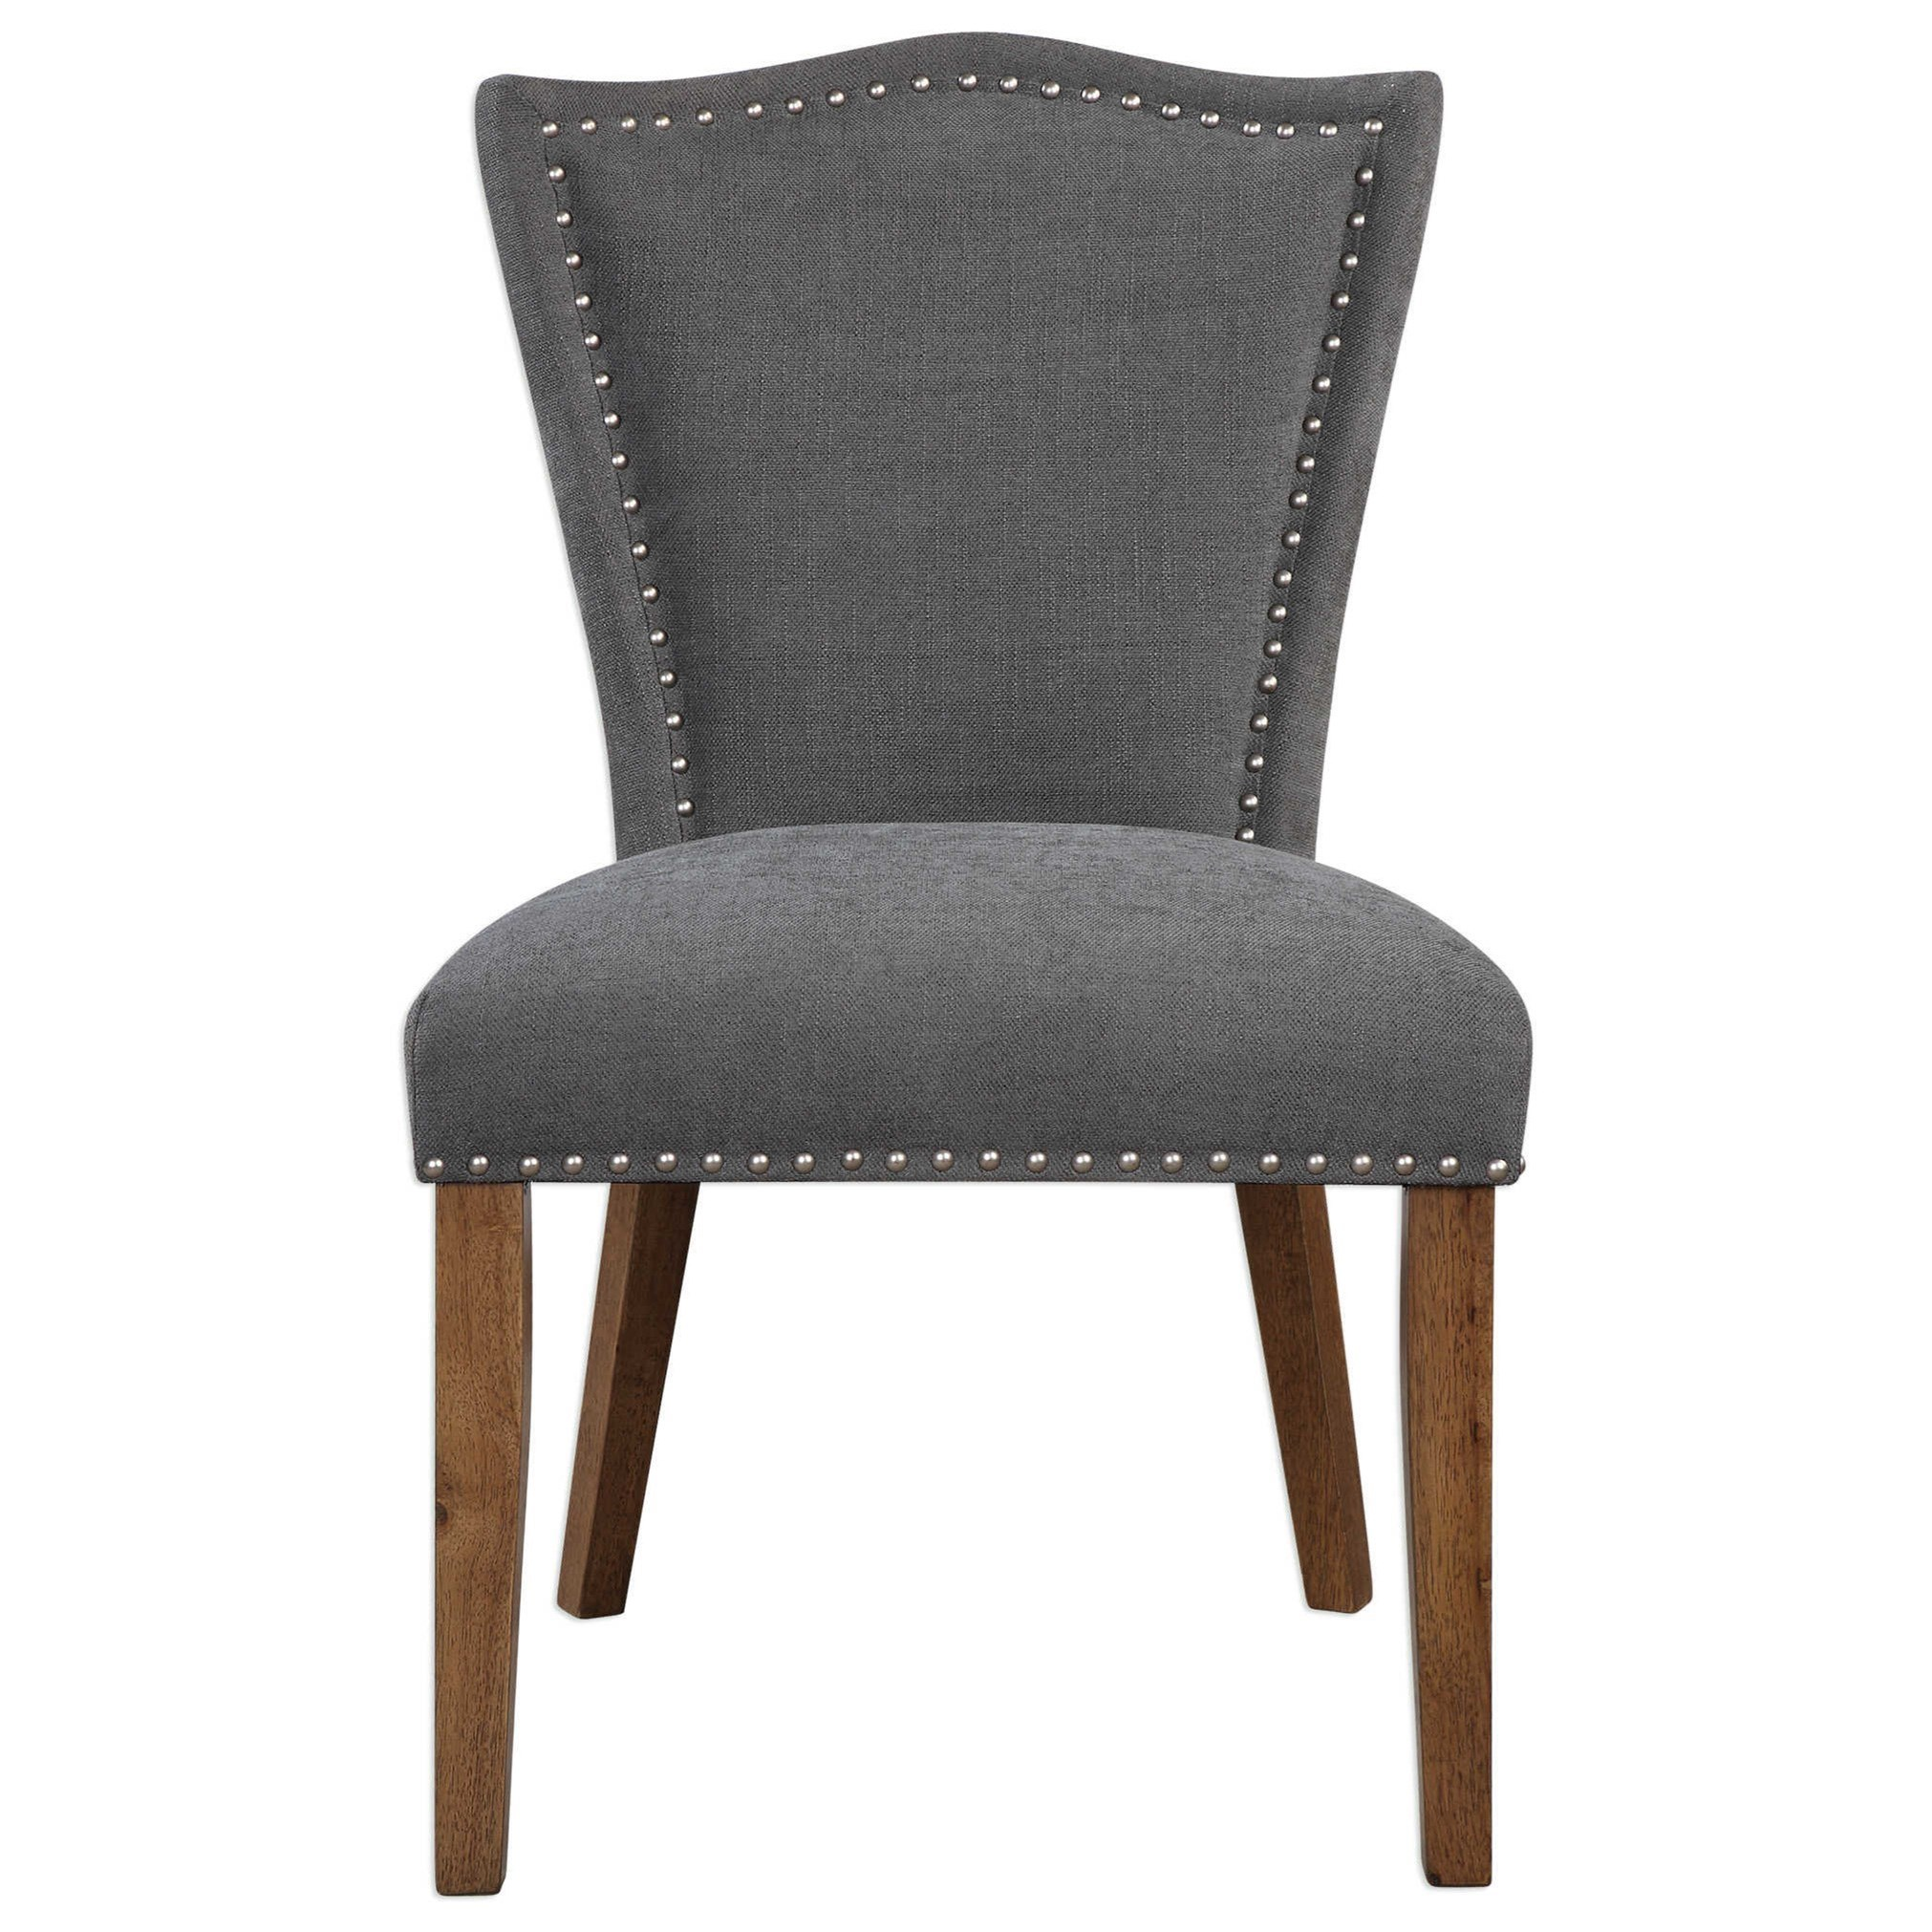 Uttermost Accent Furniture Ruhls Gray Armless Chair - Item Number: 23365